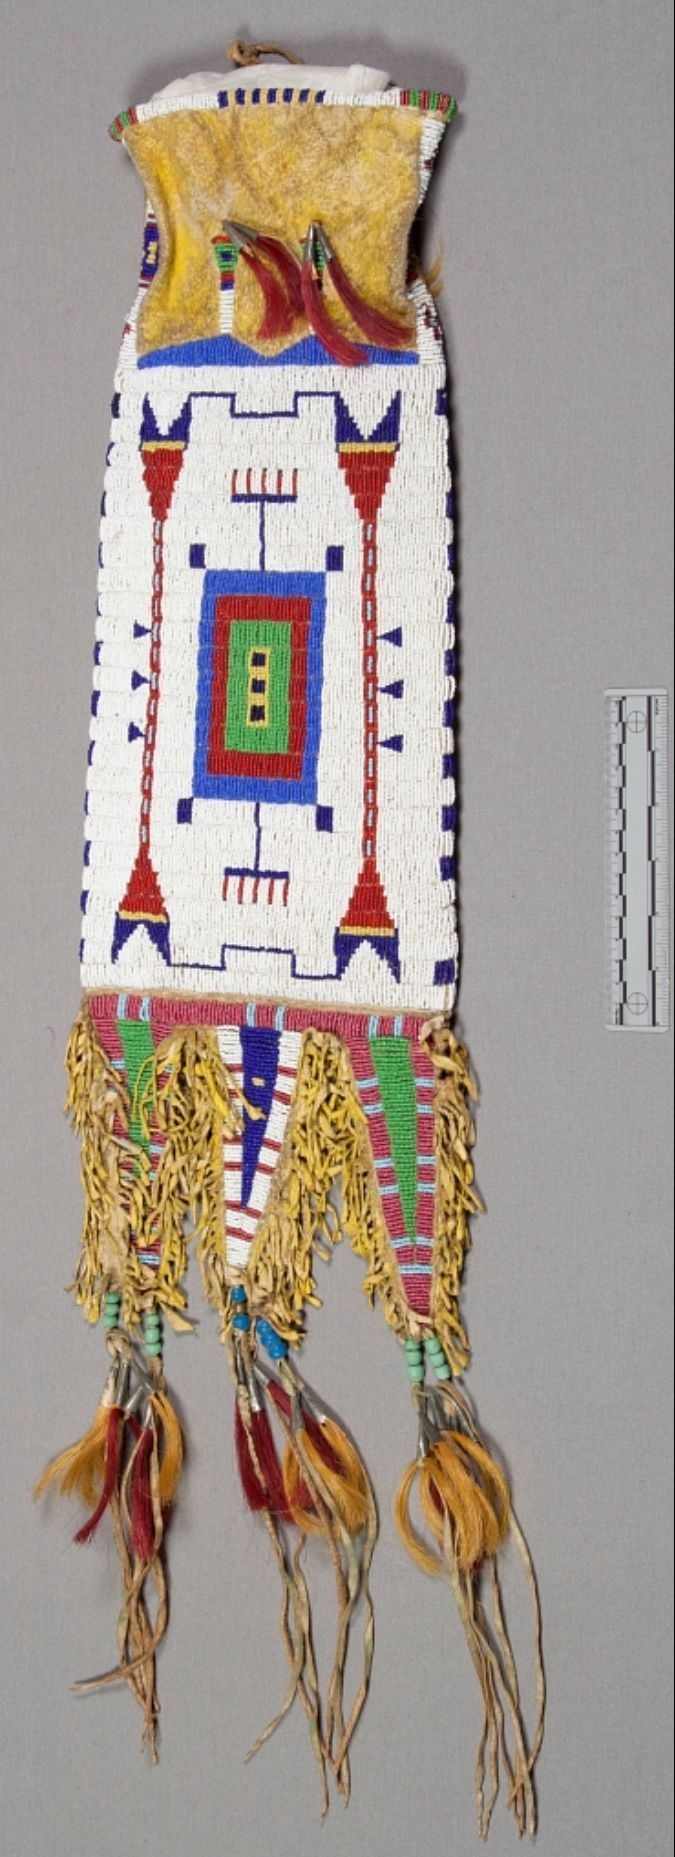 Dating native american beadwork